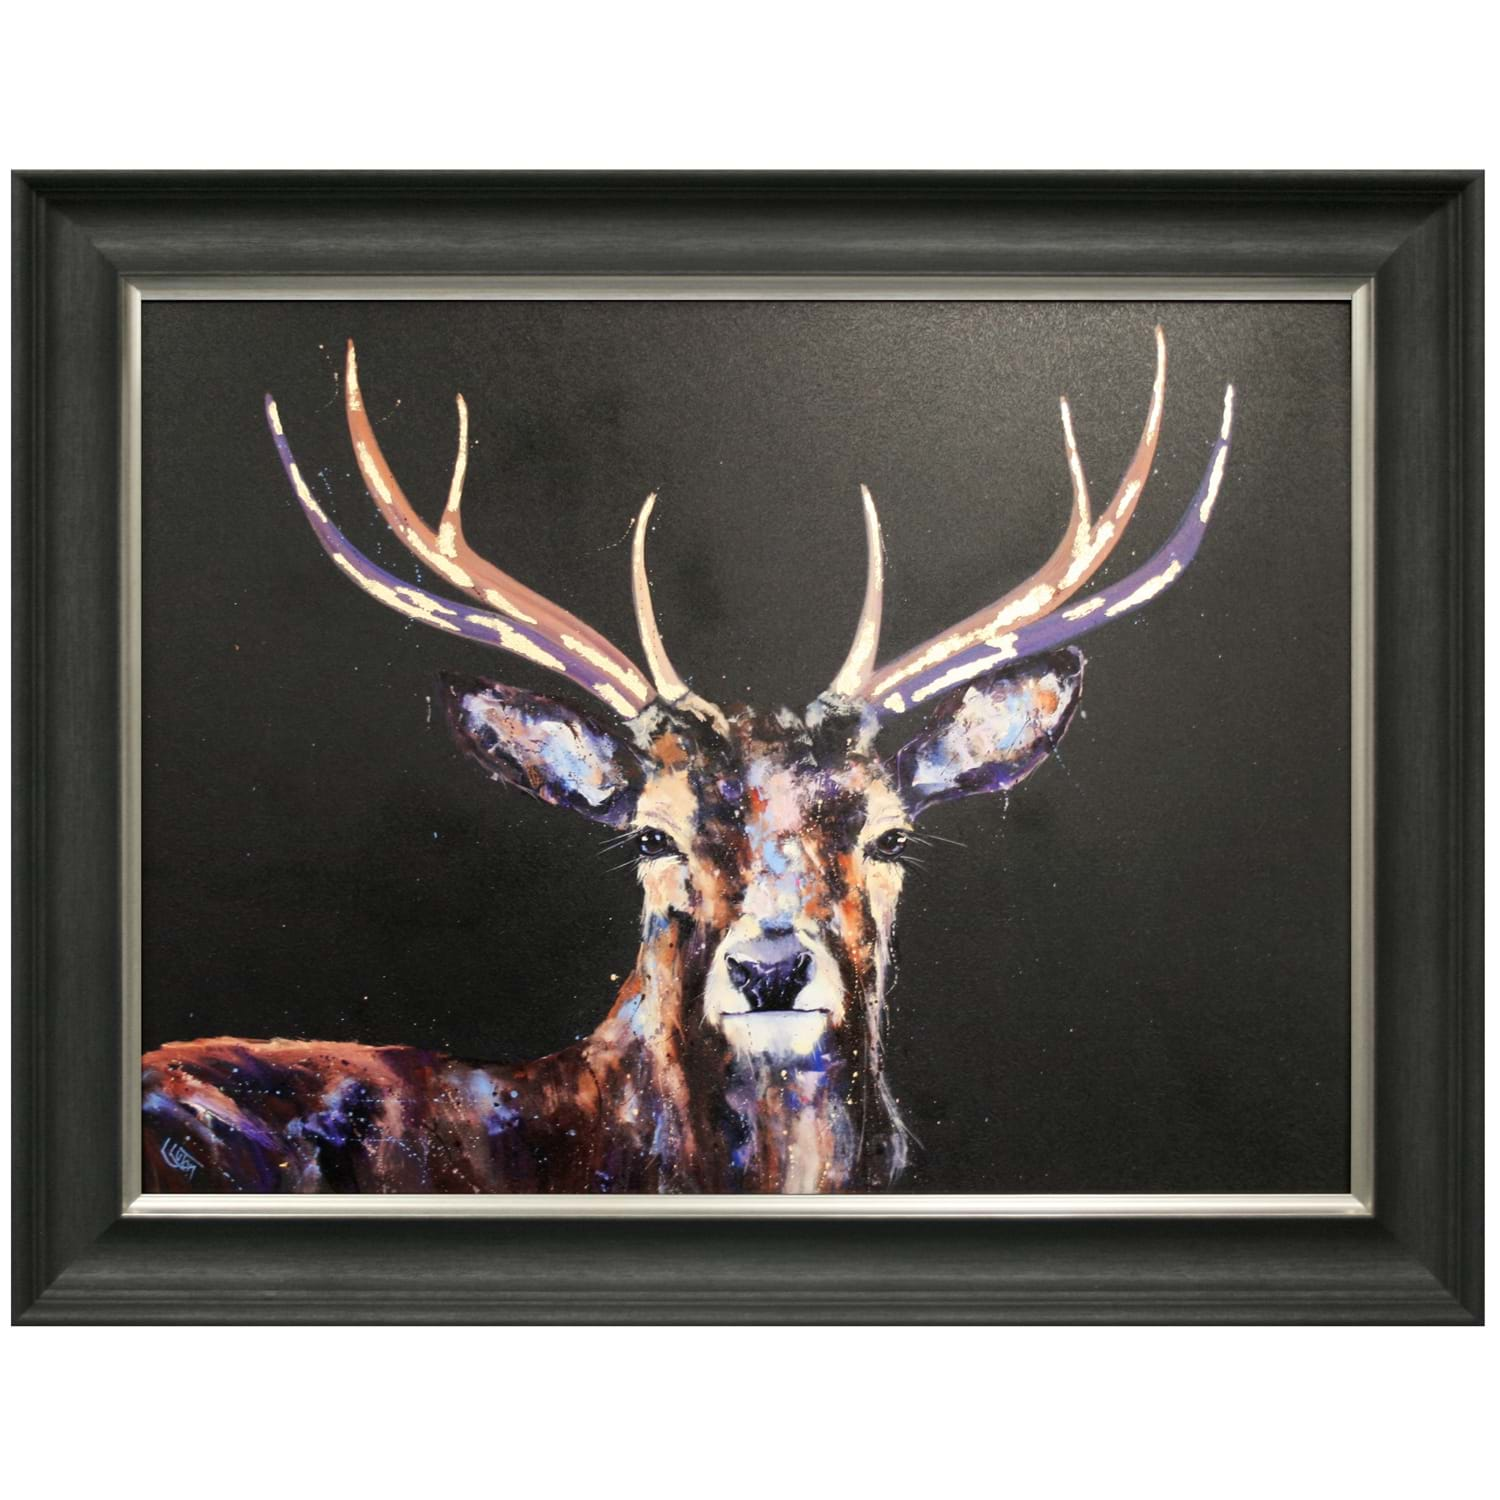 Image of Arden By Louise Luton, Framed Picture